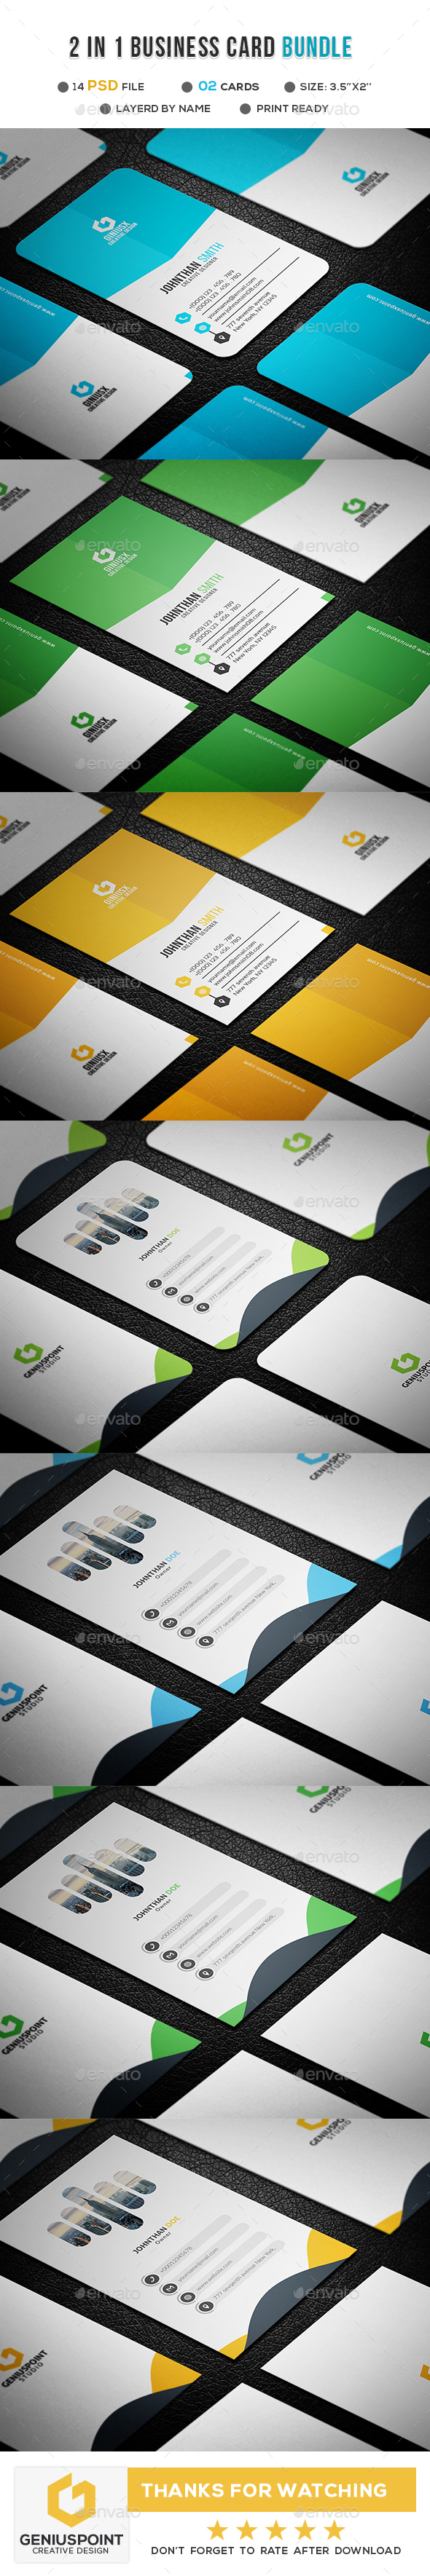 GraphicRiver 2 in 1 Business Card Bundle 21162762